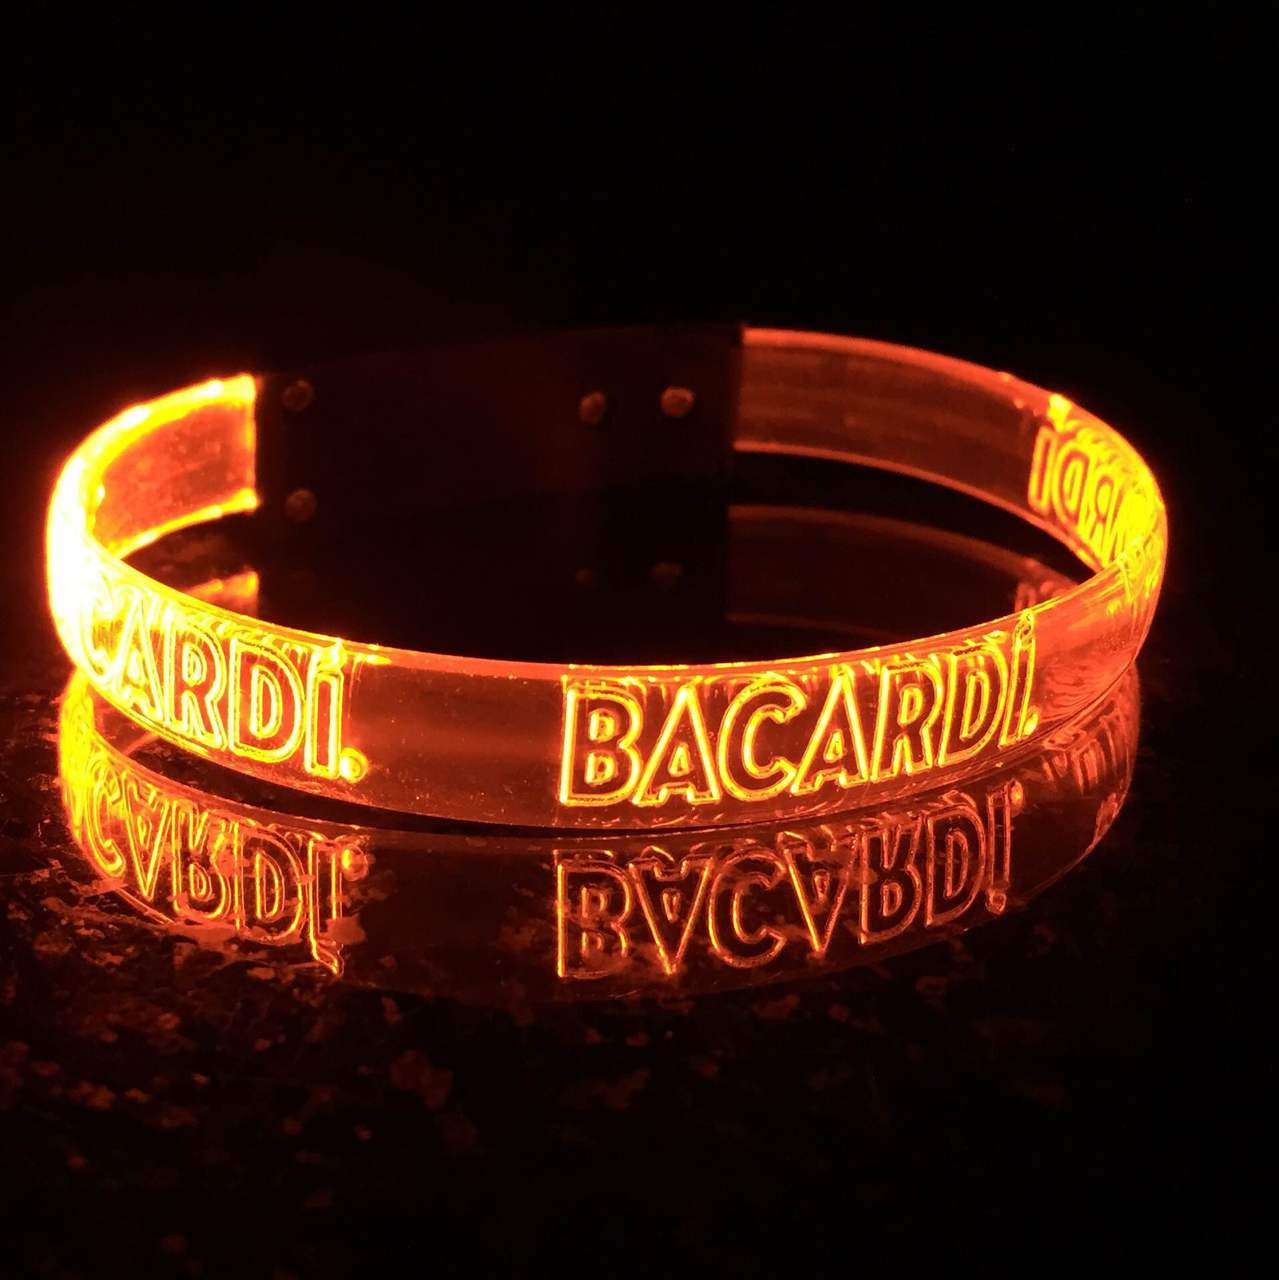 LED,Custom, Print,Engraved,Wristband,Branded, Merch, promo, VIP,bracelet